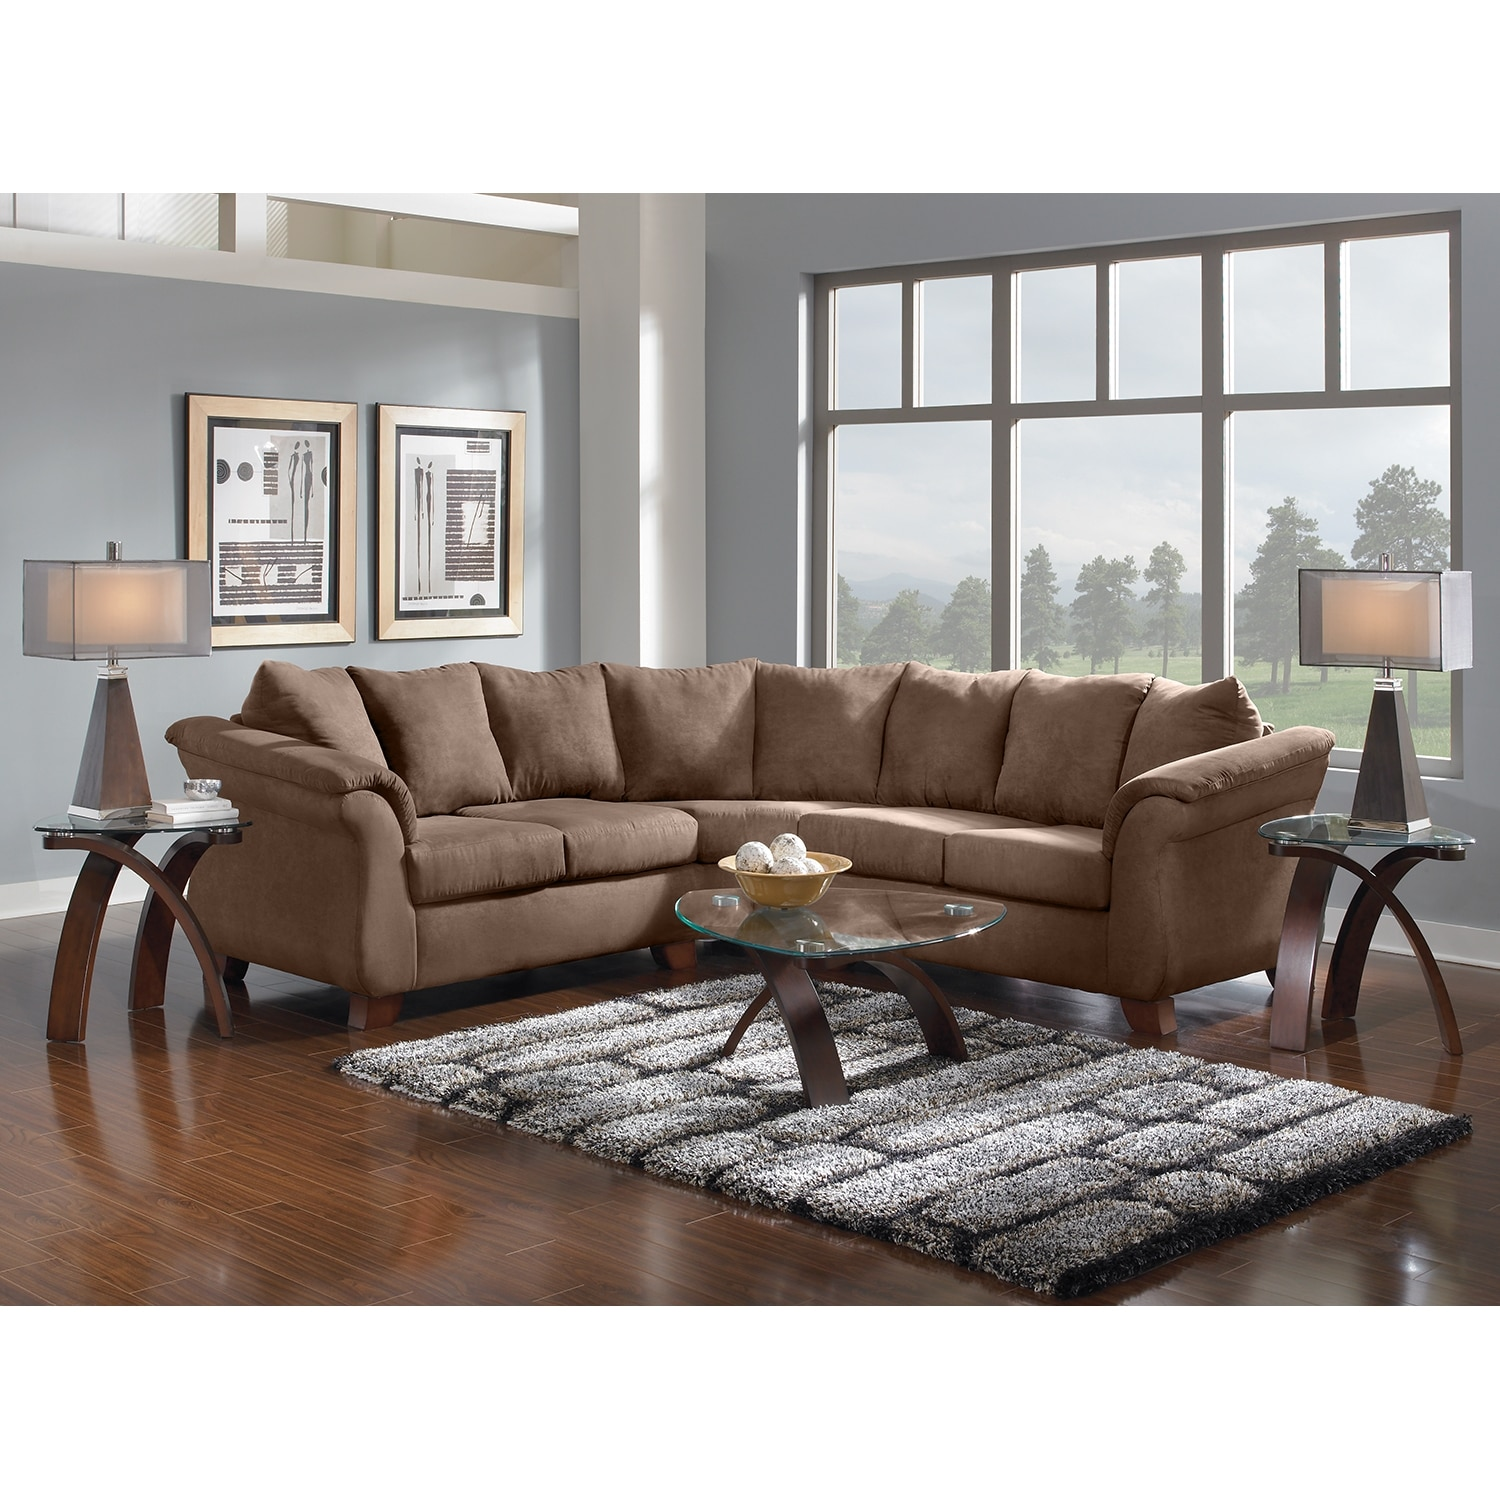 Adrian 2 piece sectional taupe value city furniture for The living room furniture